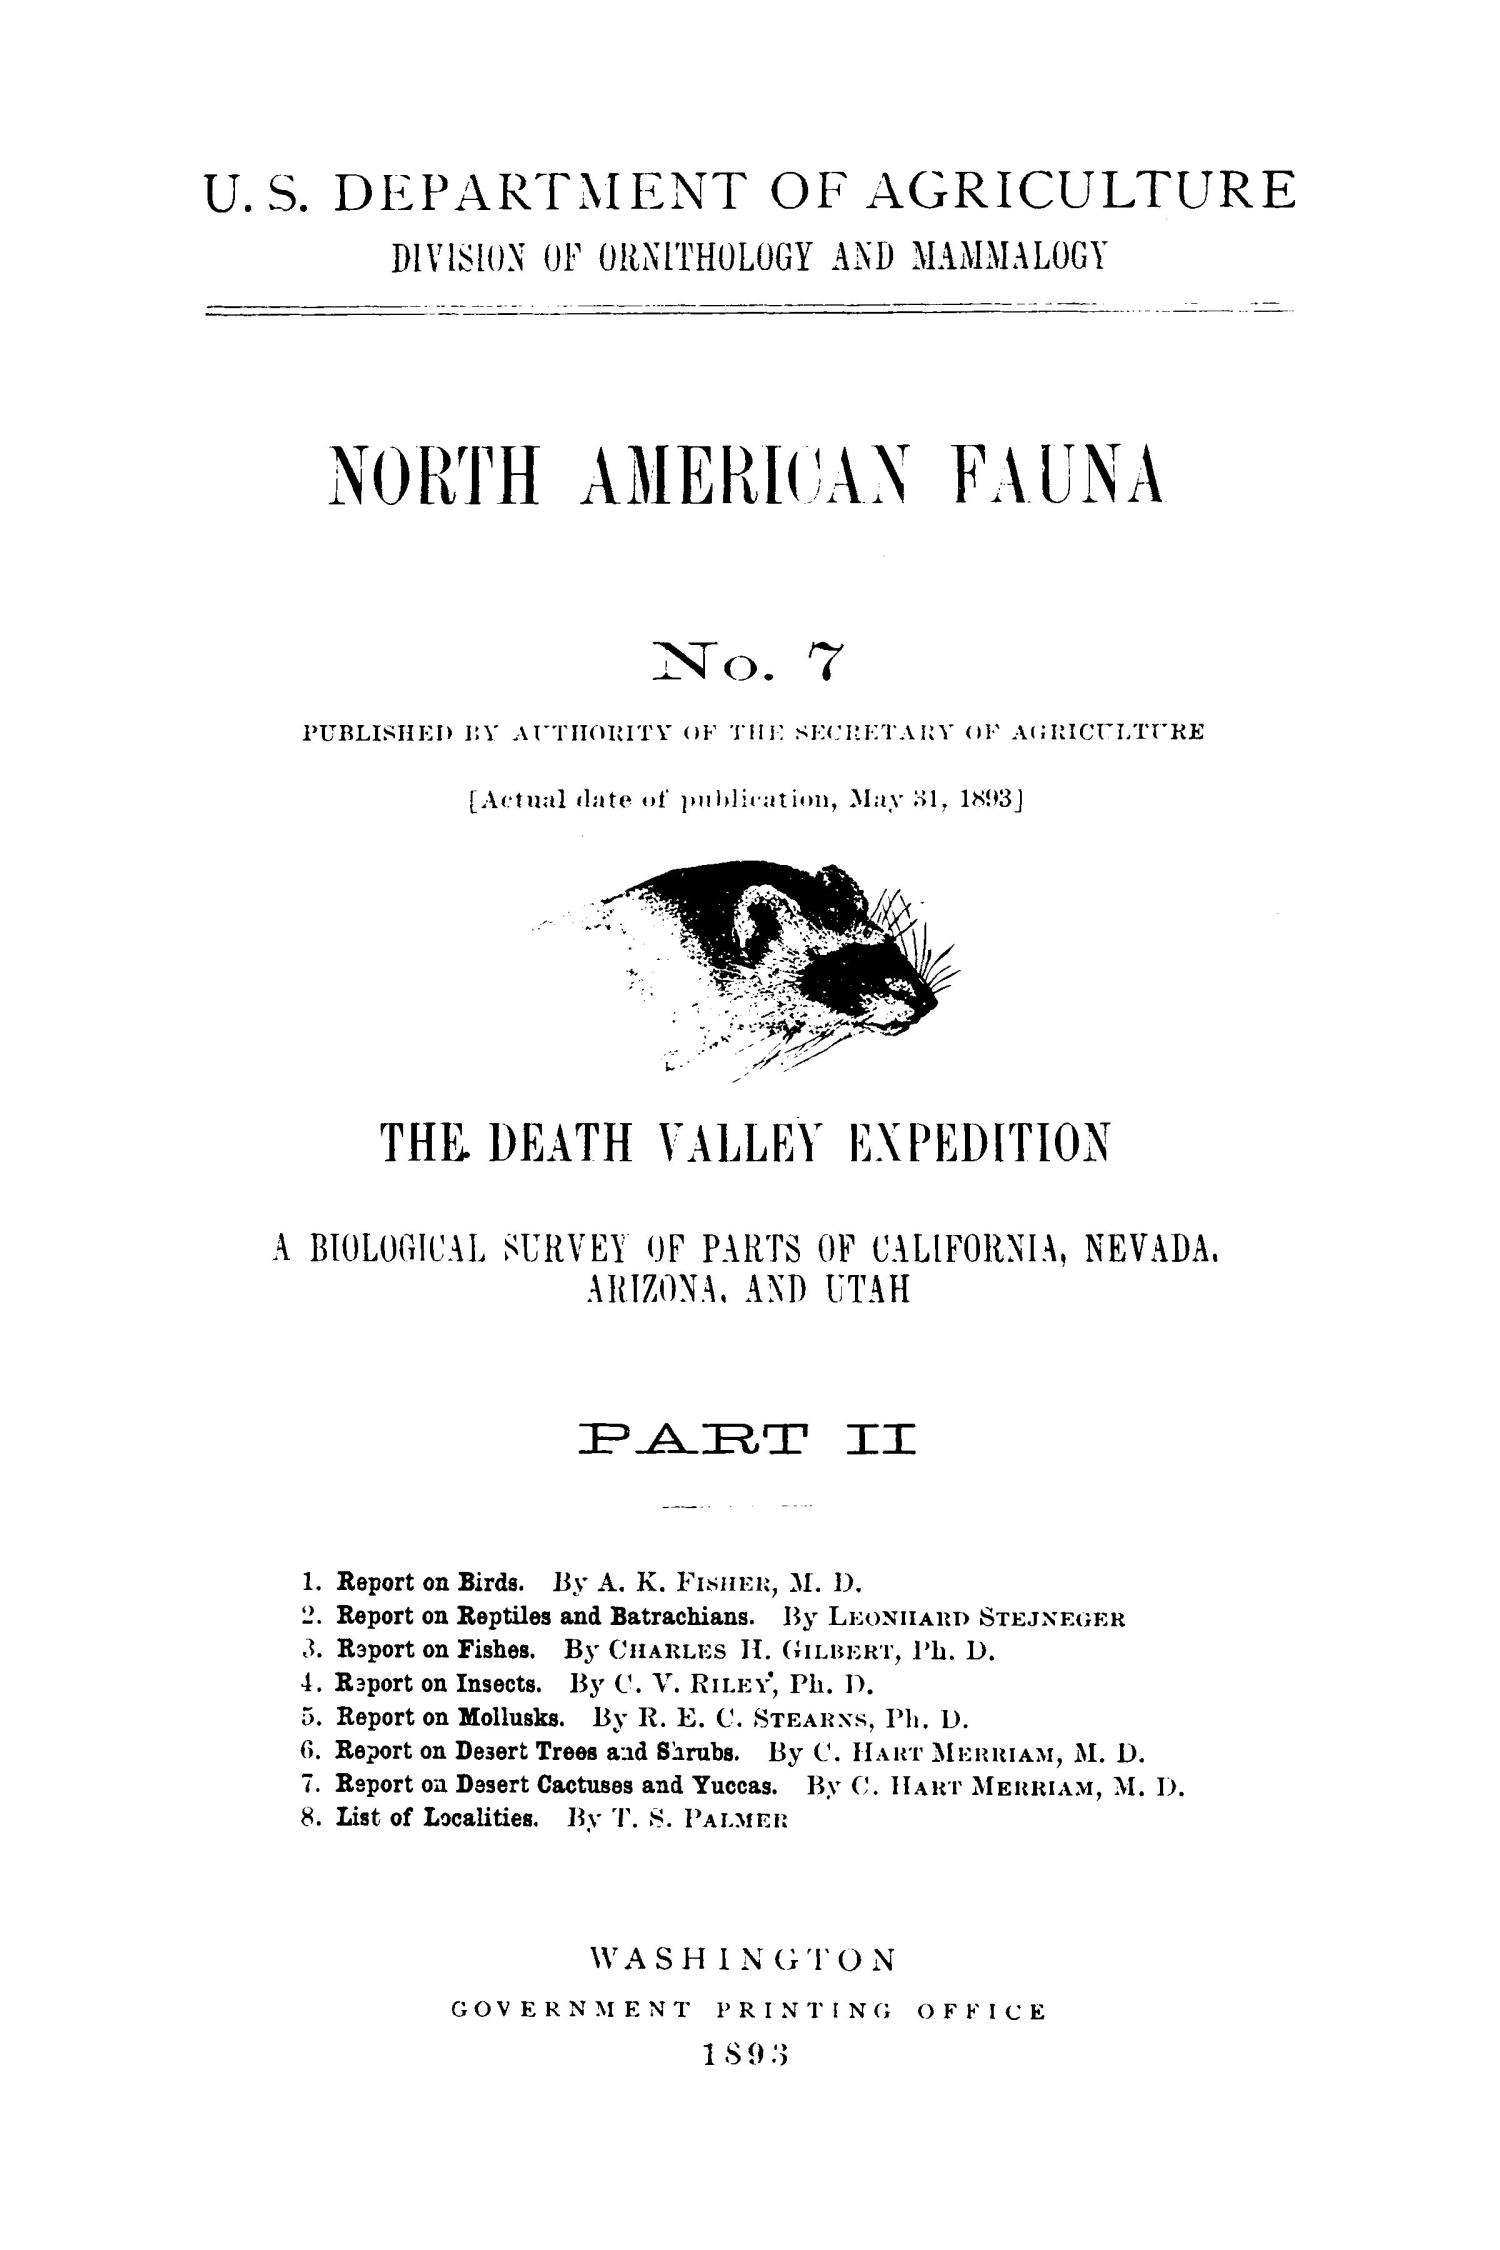 The Death Valley Expedition: A Biological Survey of Parts of California, Nevada, Arizona, and Utah, Part 2                                                                                                      Title Page